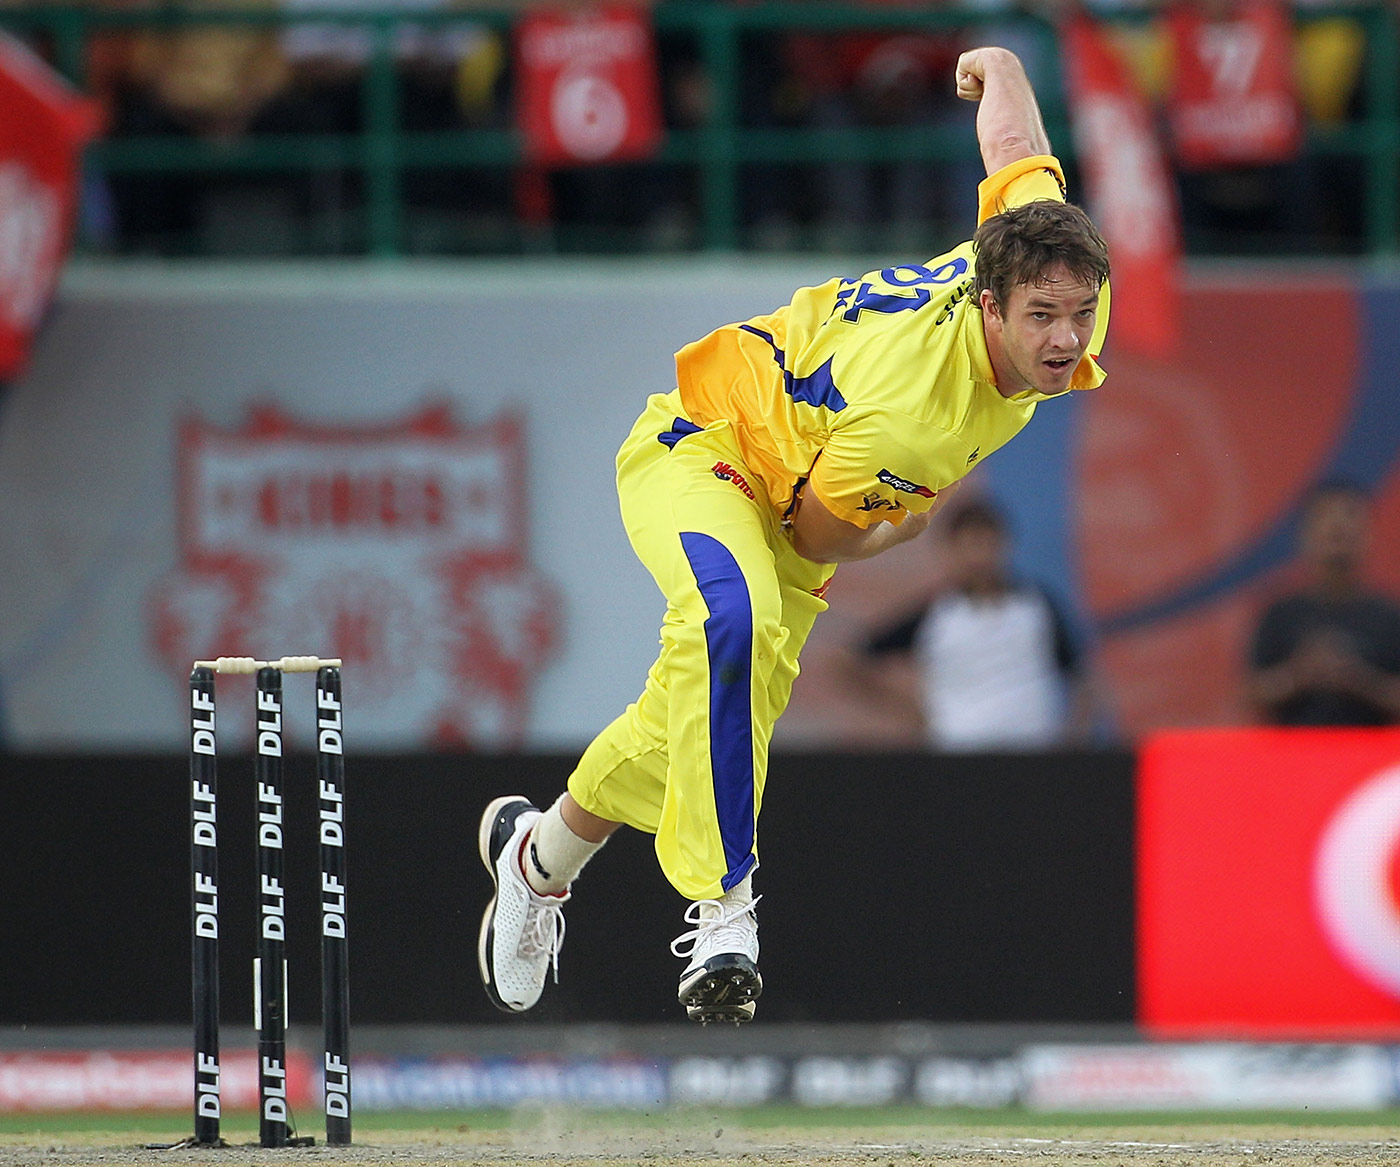 The fellow in yellow: most people's memories of Morkel are of him in a Chennai Super Kings shirt